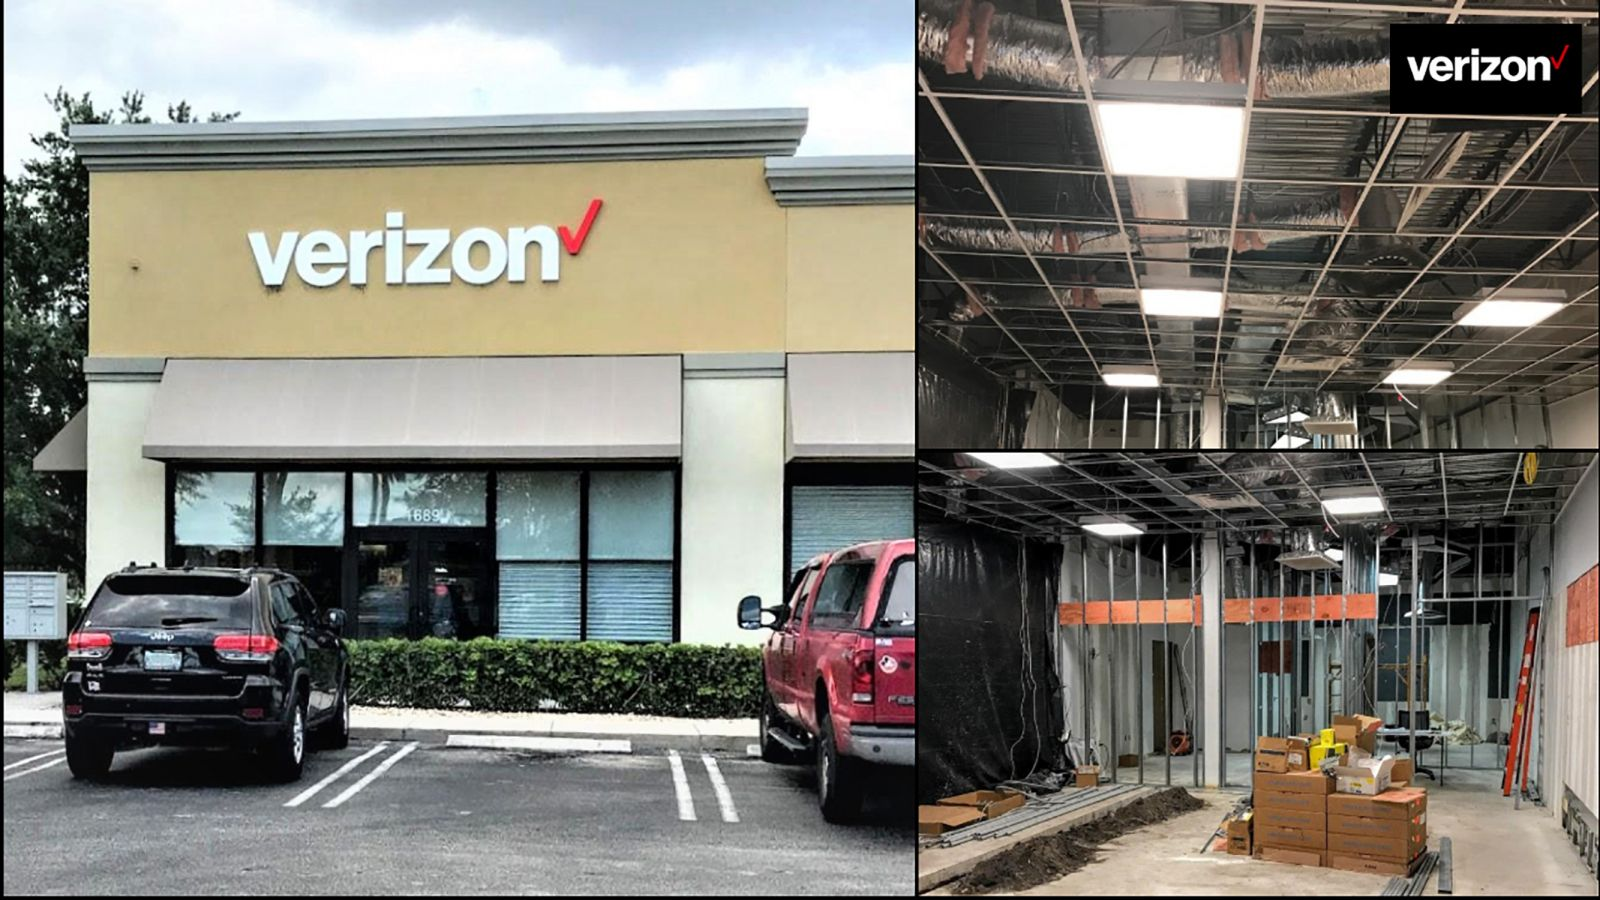 images of Verizon WirelessInterior Retrofit. Phased Project Open During Construction: Underground Electrical, Concrete Cutting, New Millwork Fixtures, Drywall, Flooring, Finishes, and Signage. - Port. Saint Lucie, FL